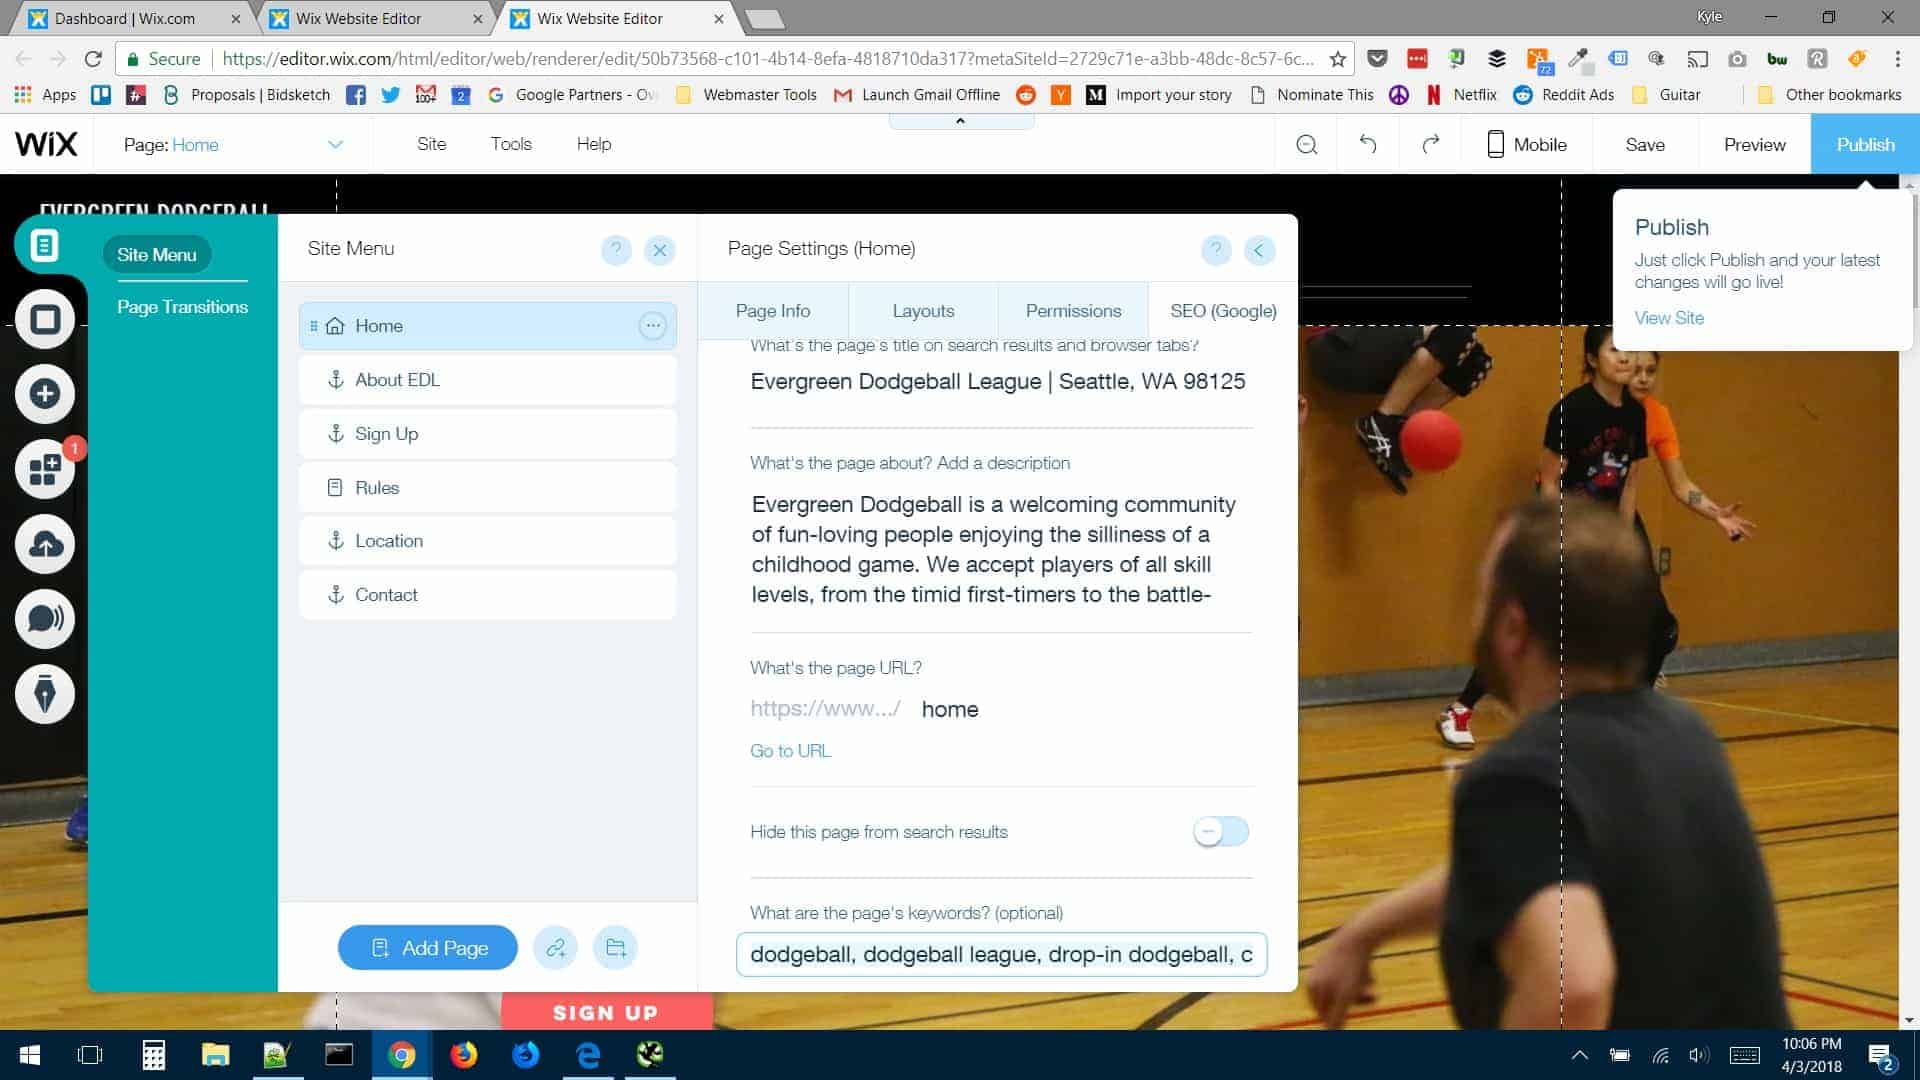 Evergreen Dodgeball Wix SEO Review